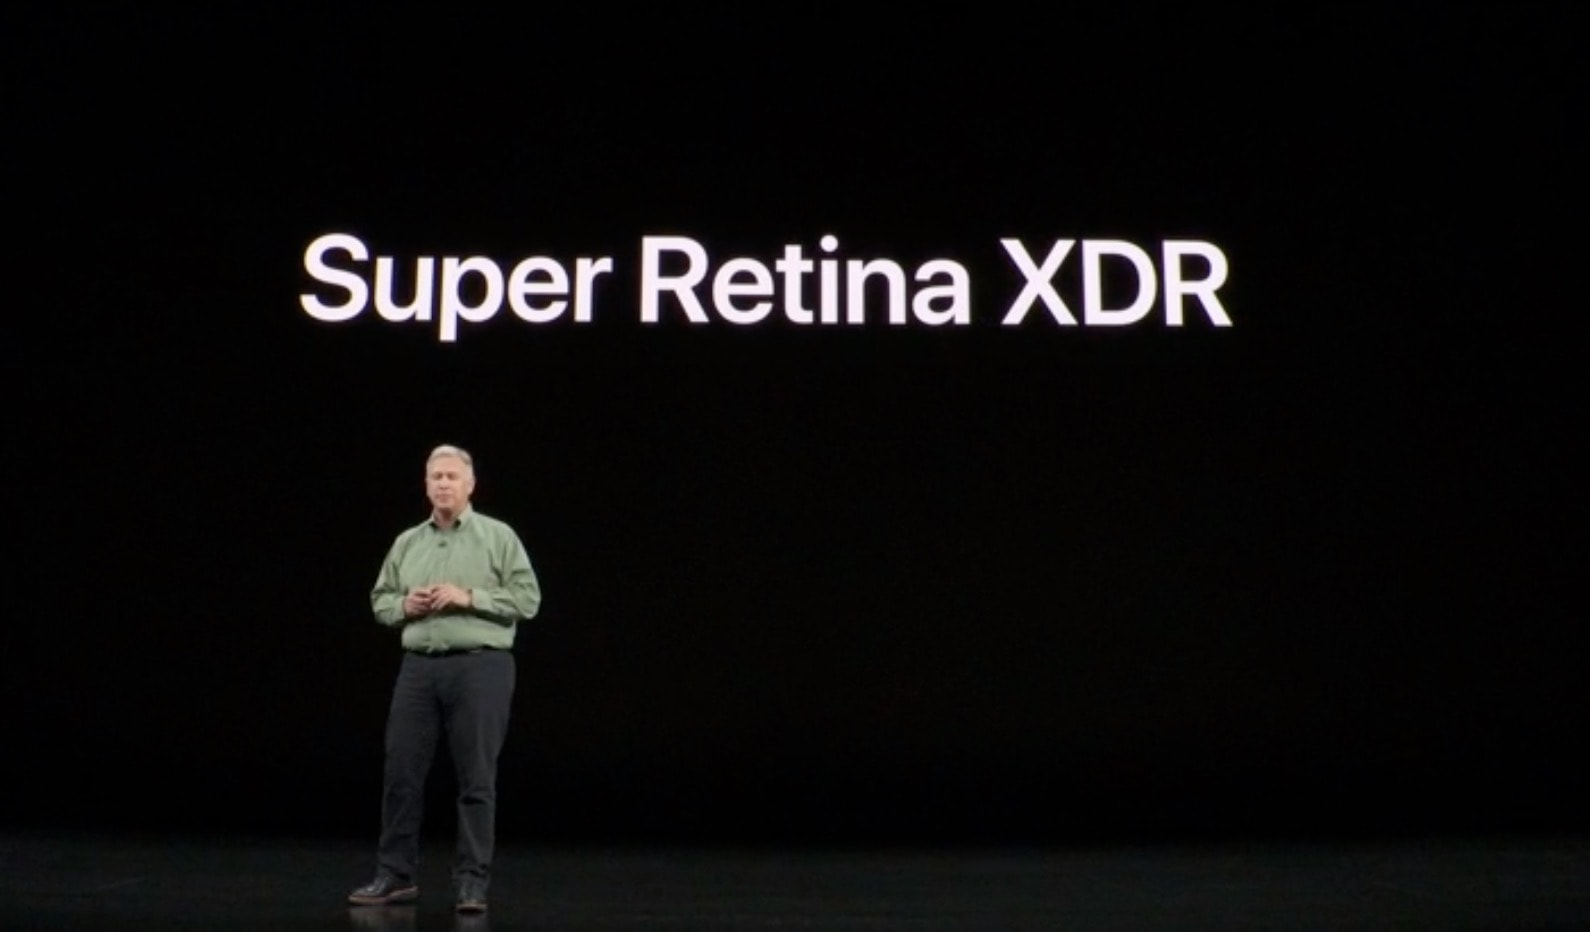 The Super Retina XDR display is the best iPhone display ever built